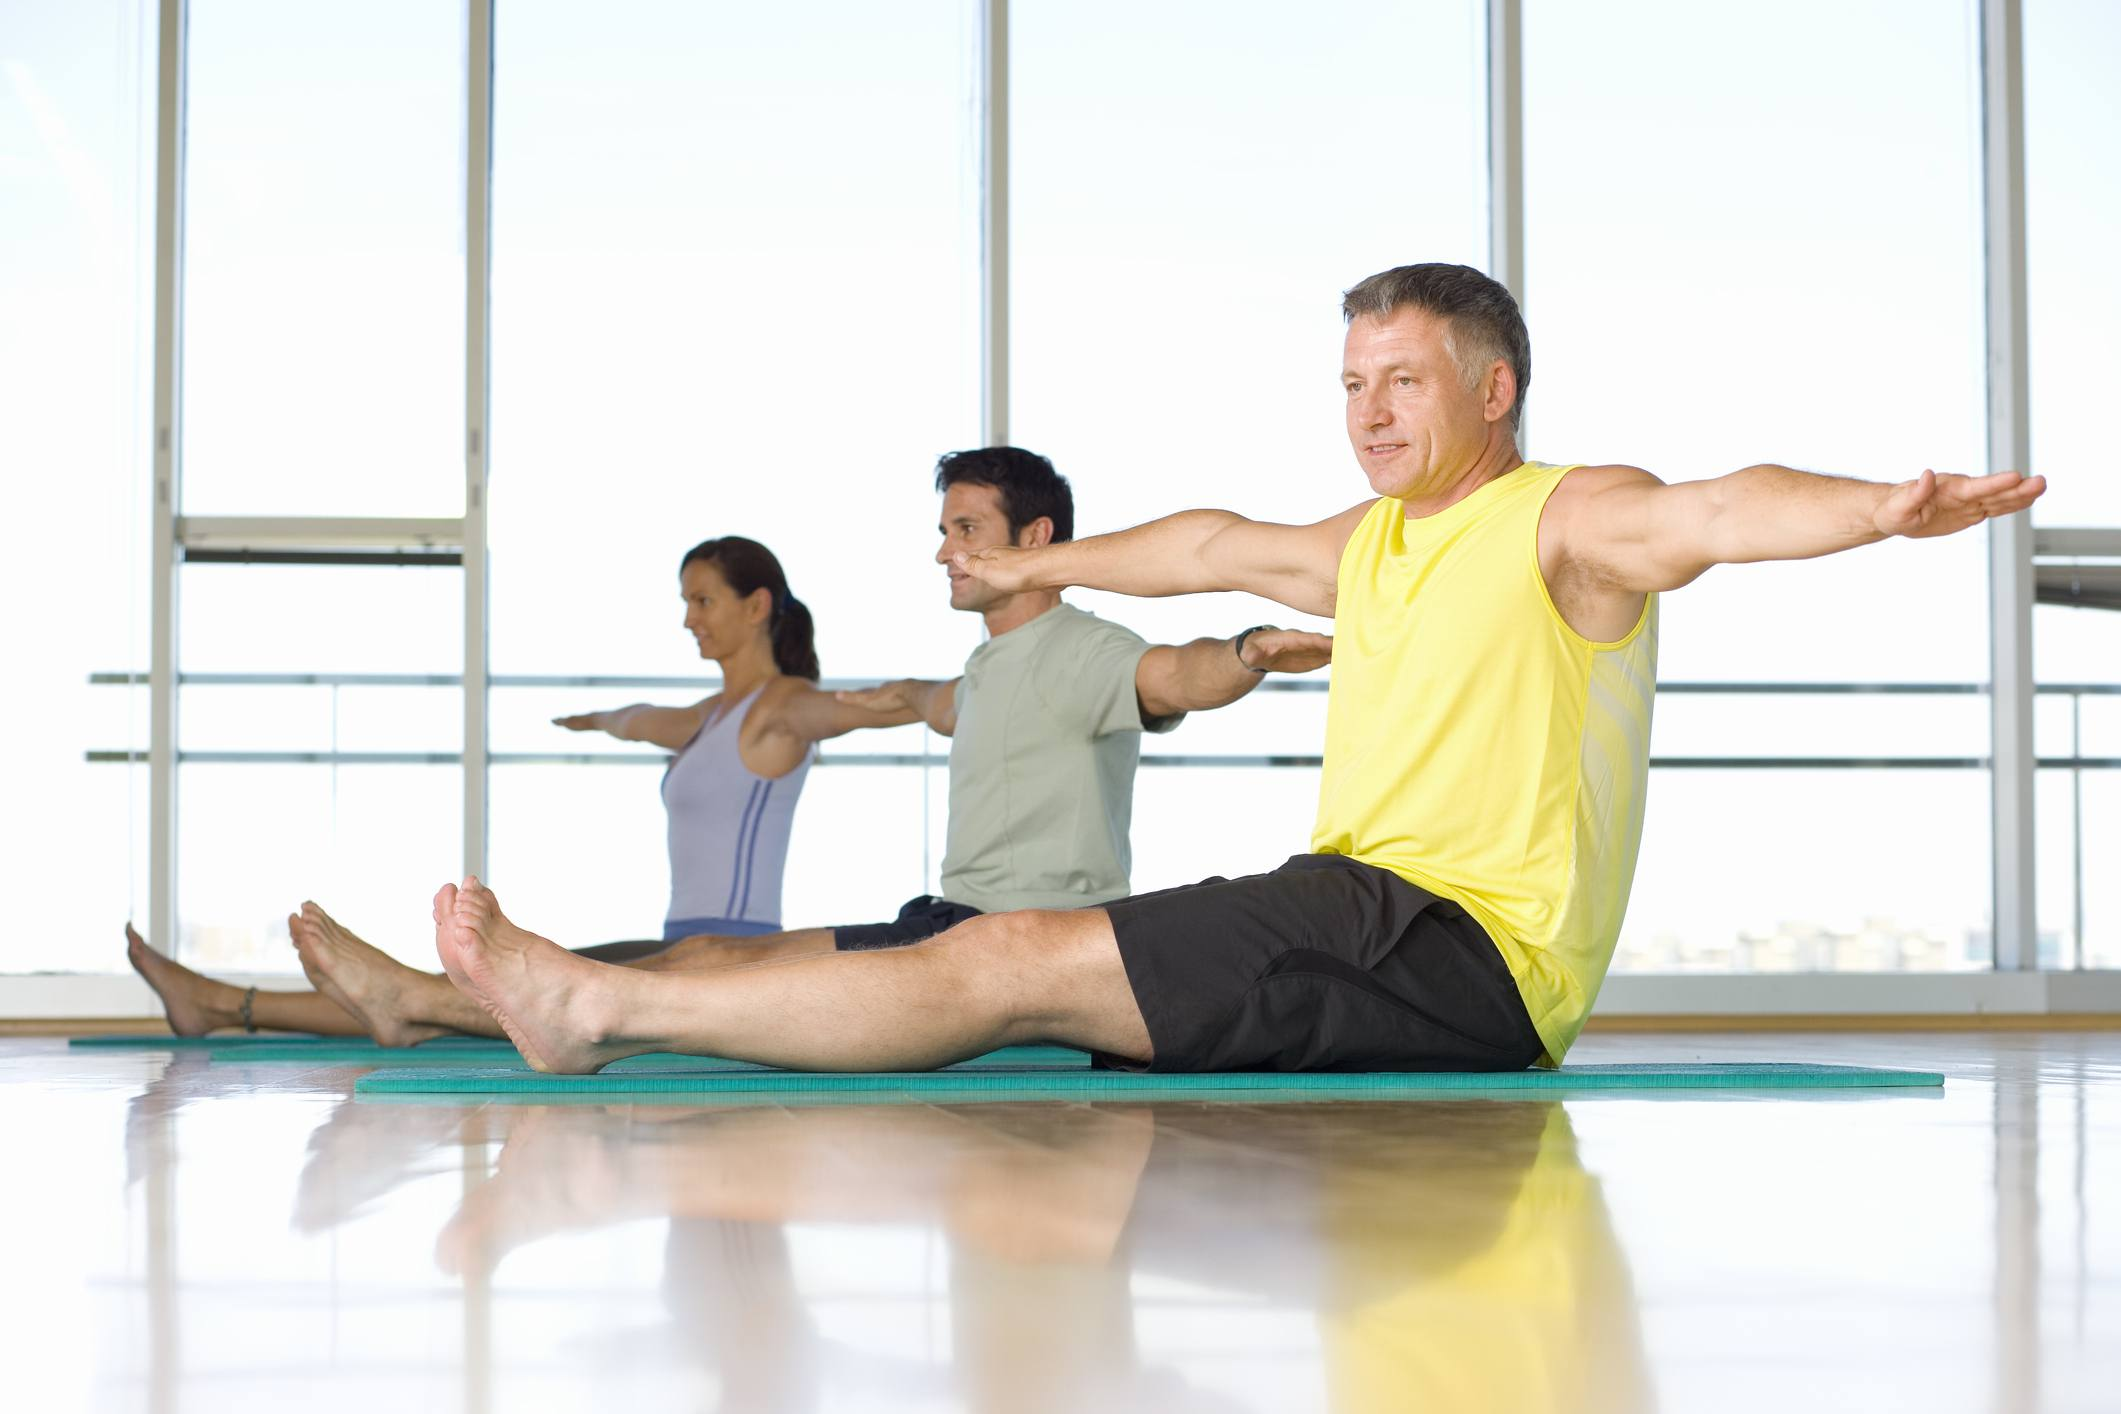 Exercise class in starting position of the pilates saw